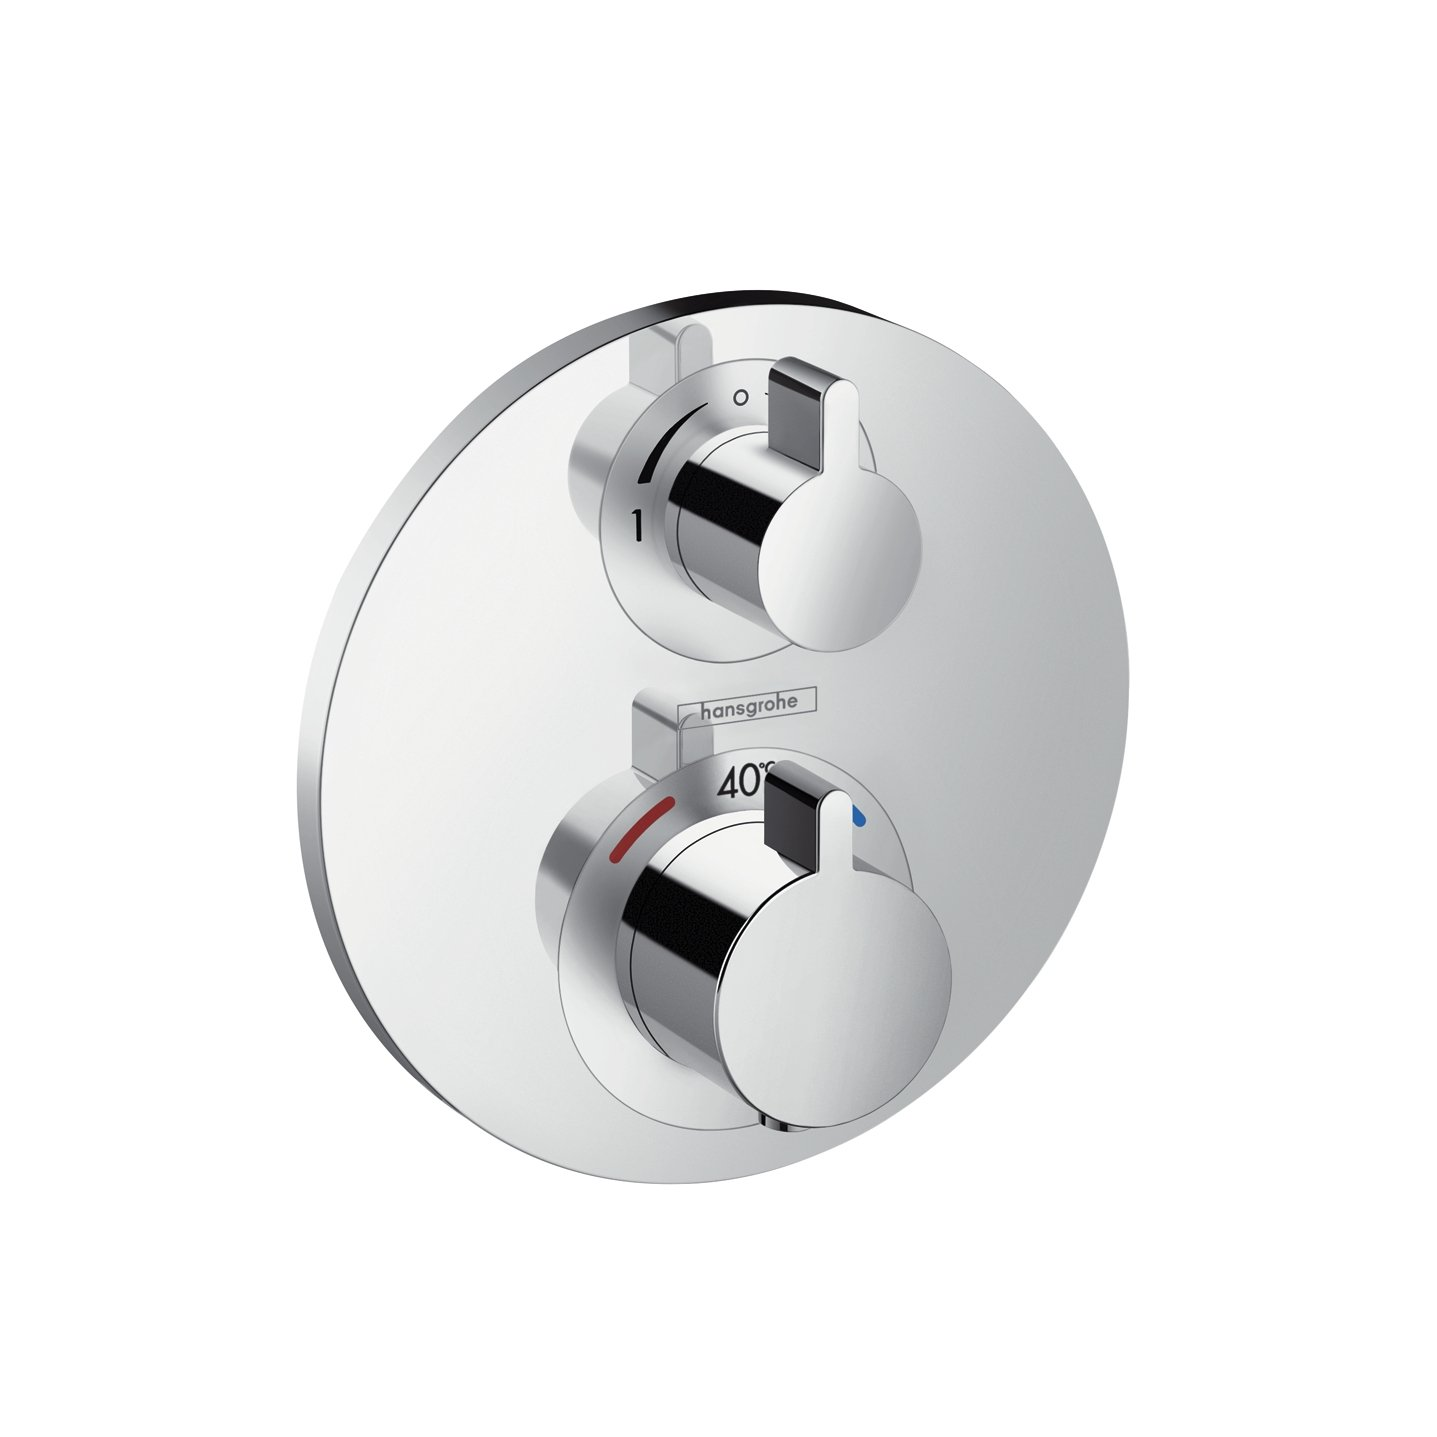 hansgrohe Ecostat S thermostatic mixer for 1 outlet with shut off ...